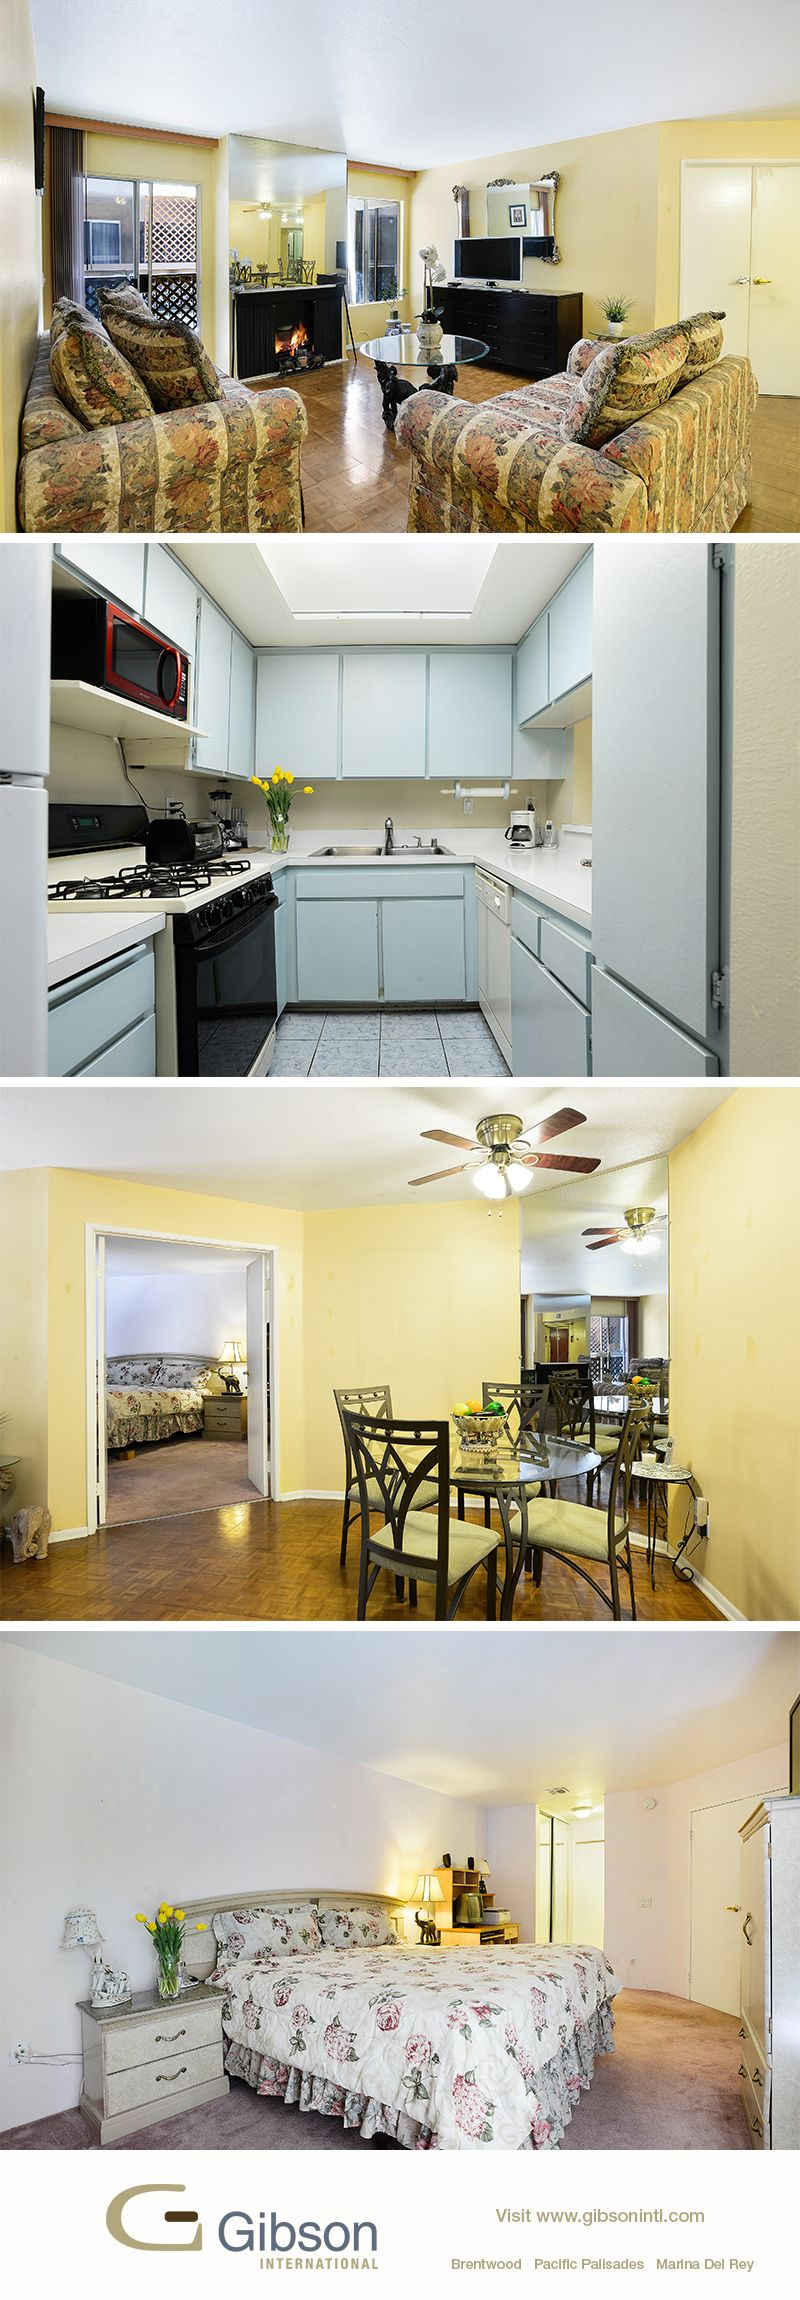 Light And Bright Glendale Condo Affordable Home Near The Galleria Shopping And Dining Contact Agent Jodi Deranja Home House Interior Apartments For Rent